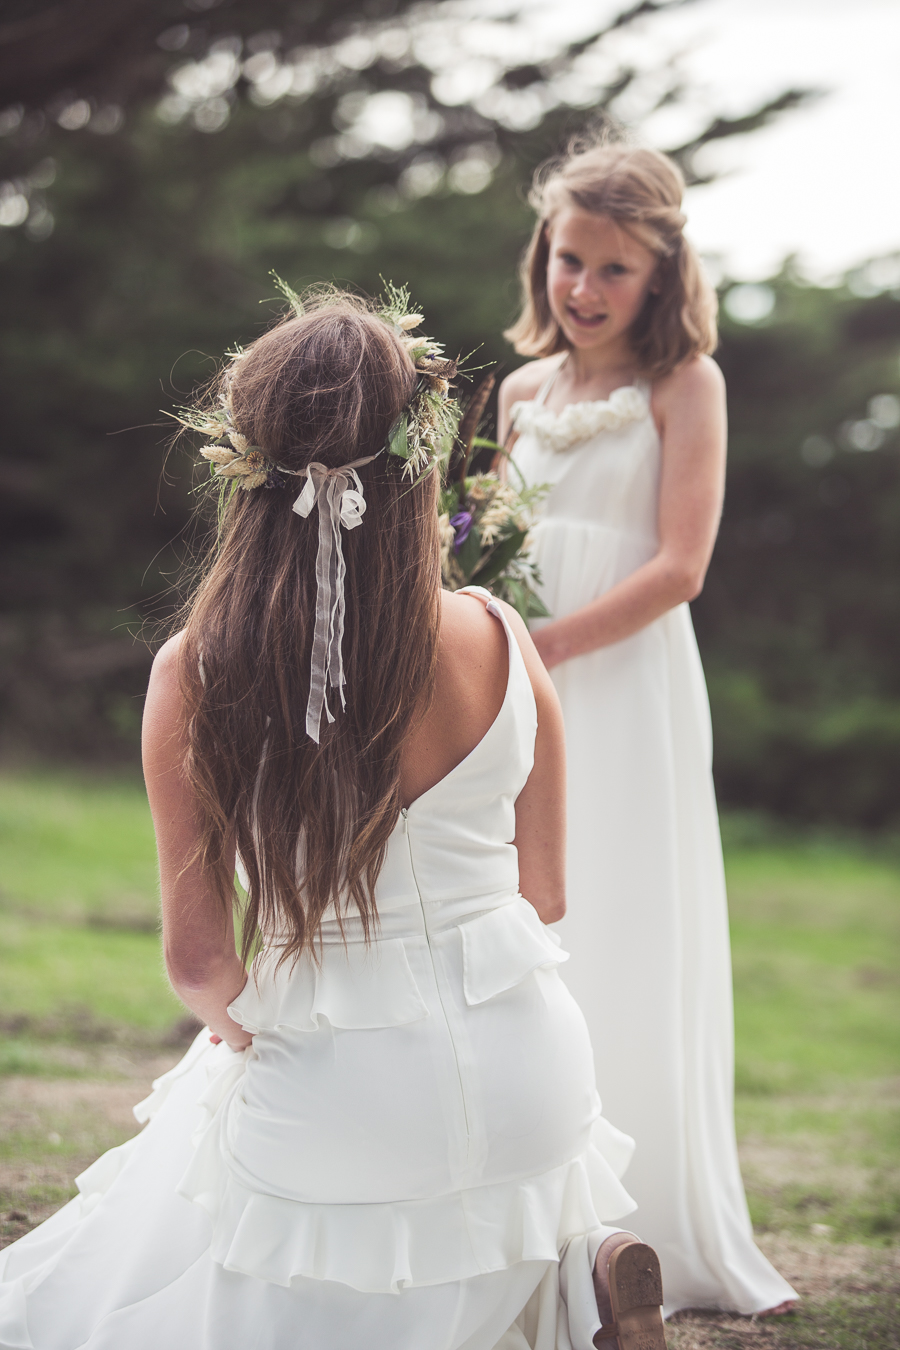 Beach boho wedding styling ideas from the UK, image credit Katie Mortimore (27)